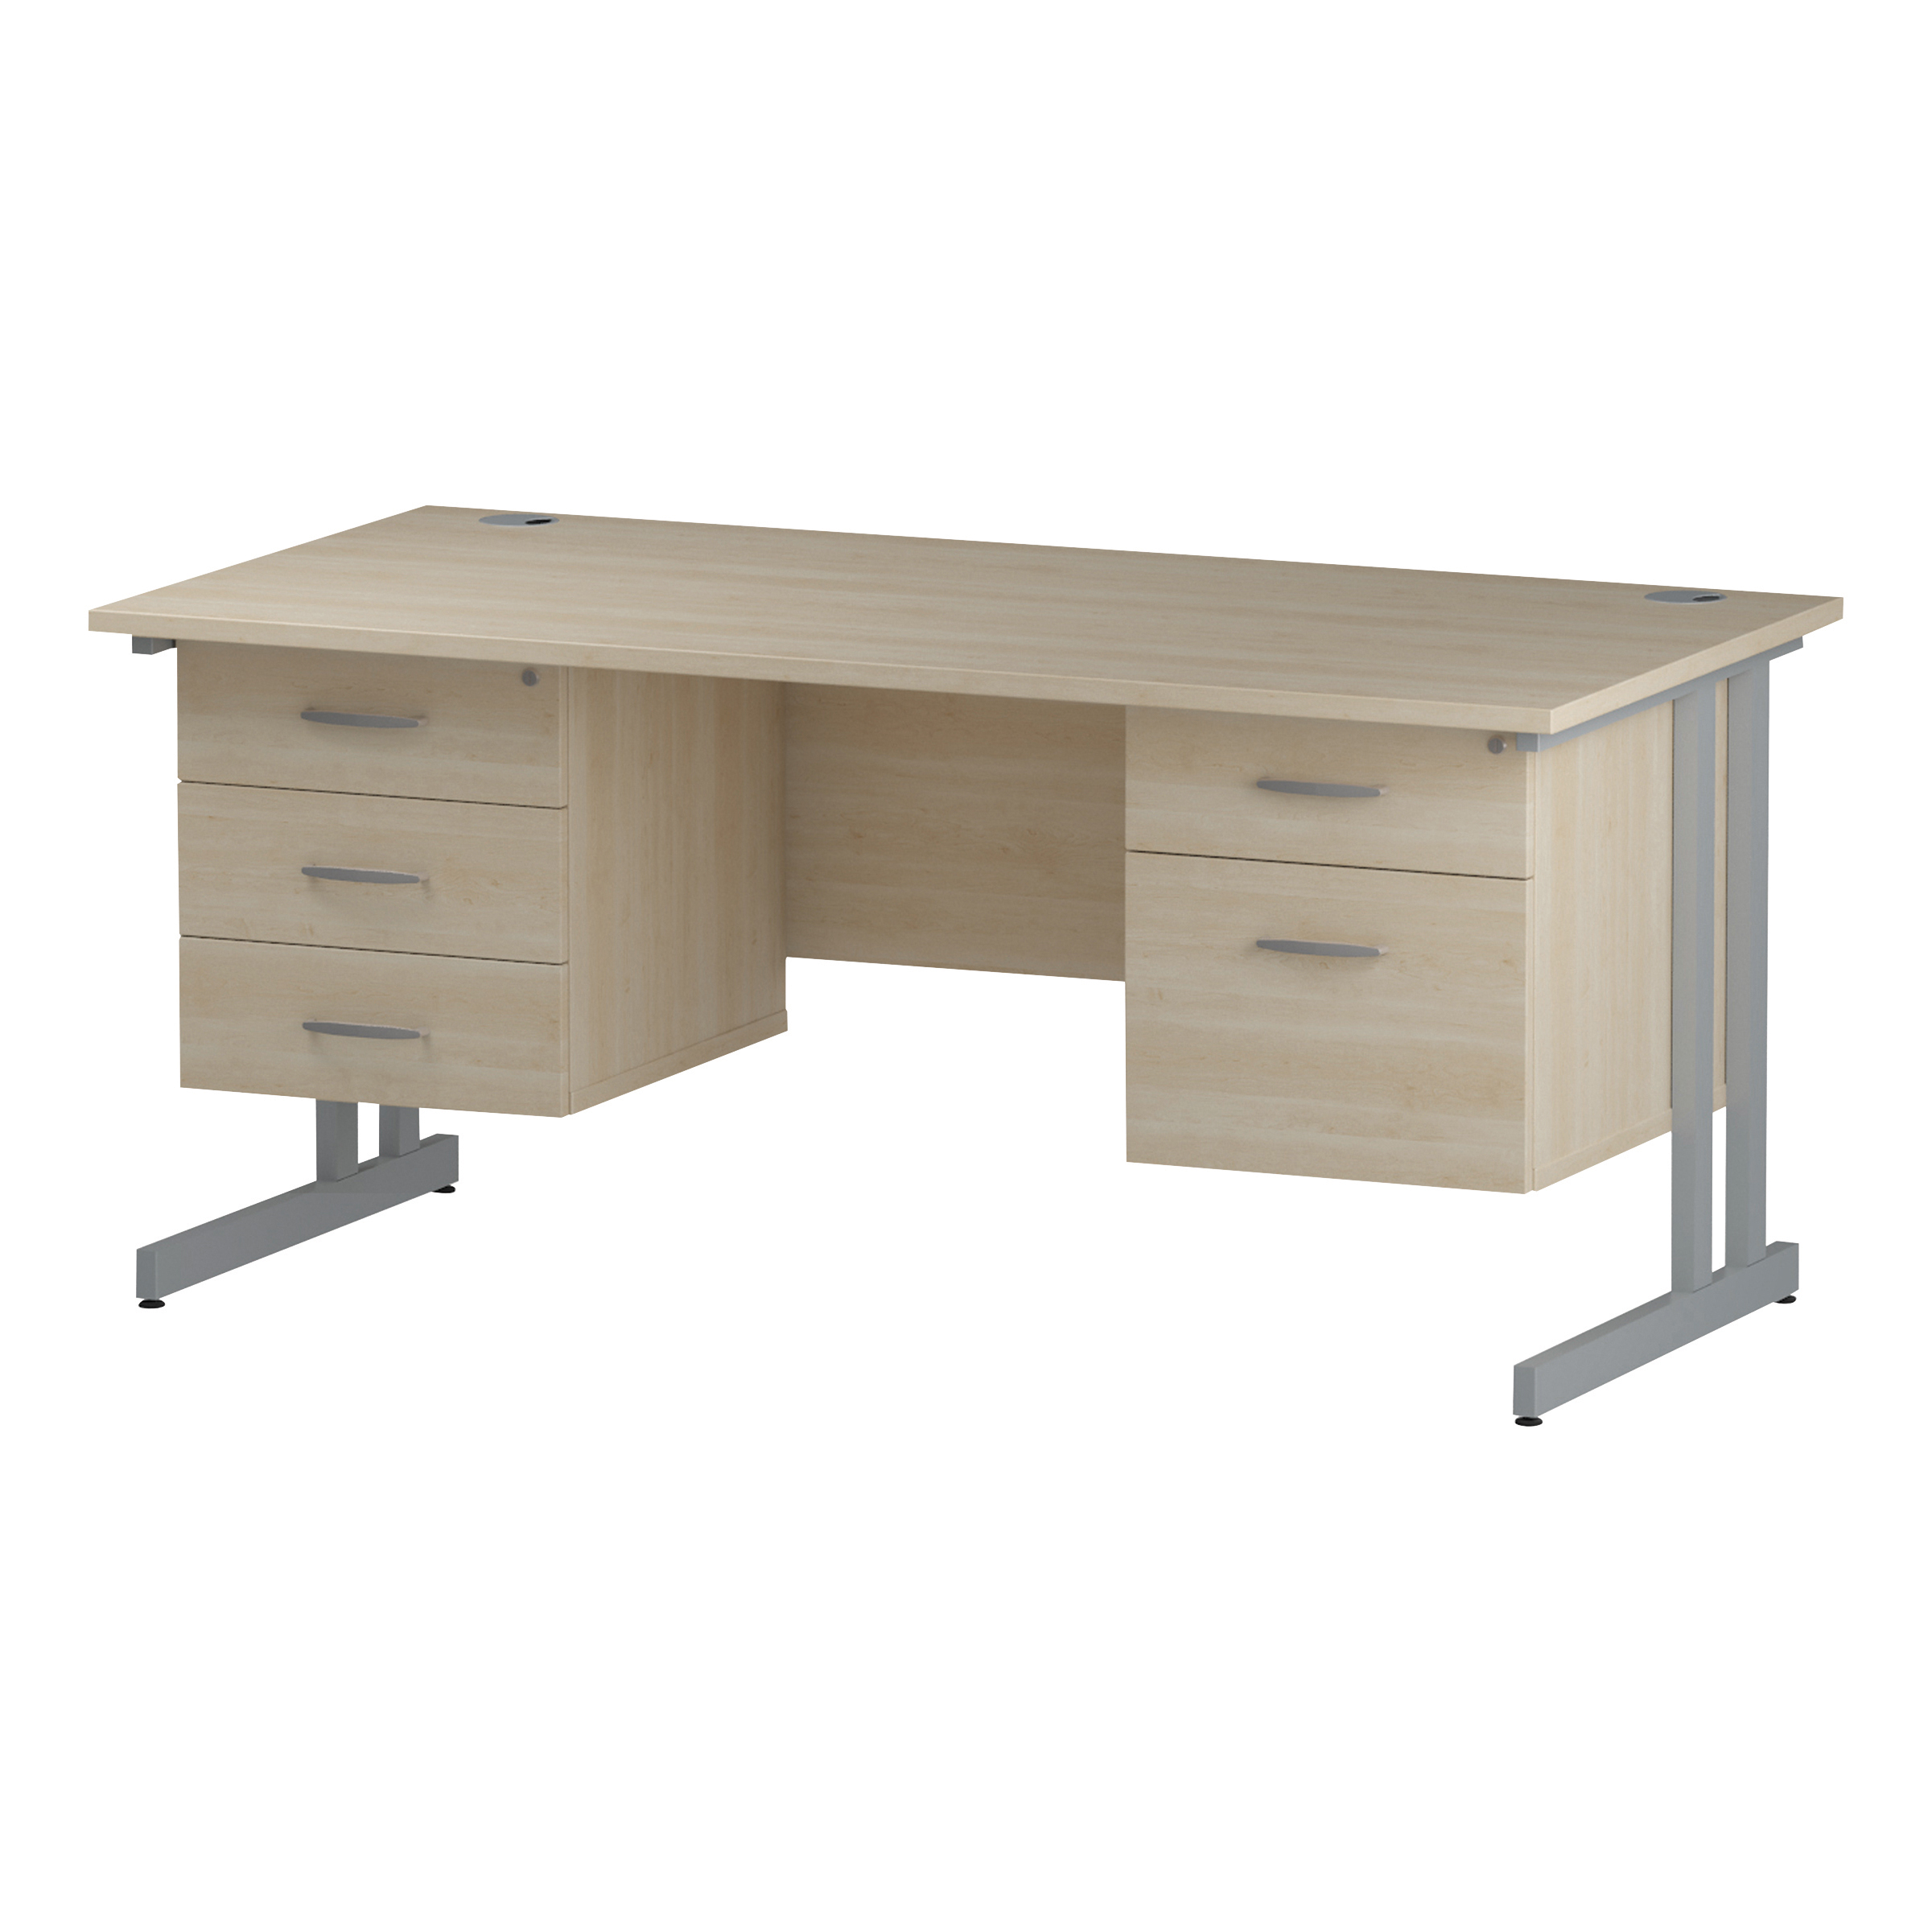 Trexus Rectangular Desk Silver Cantilever Leg 1600x800mm Double Fixed Ped 2&3 Drawers Maple Ref I002465